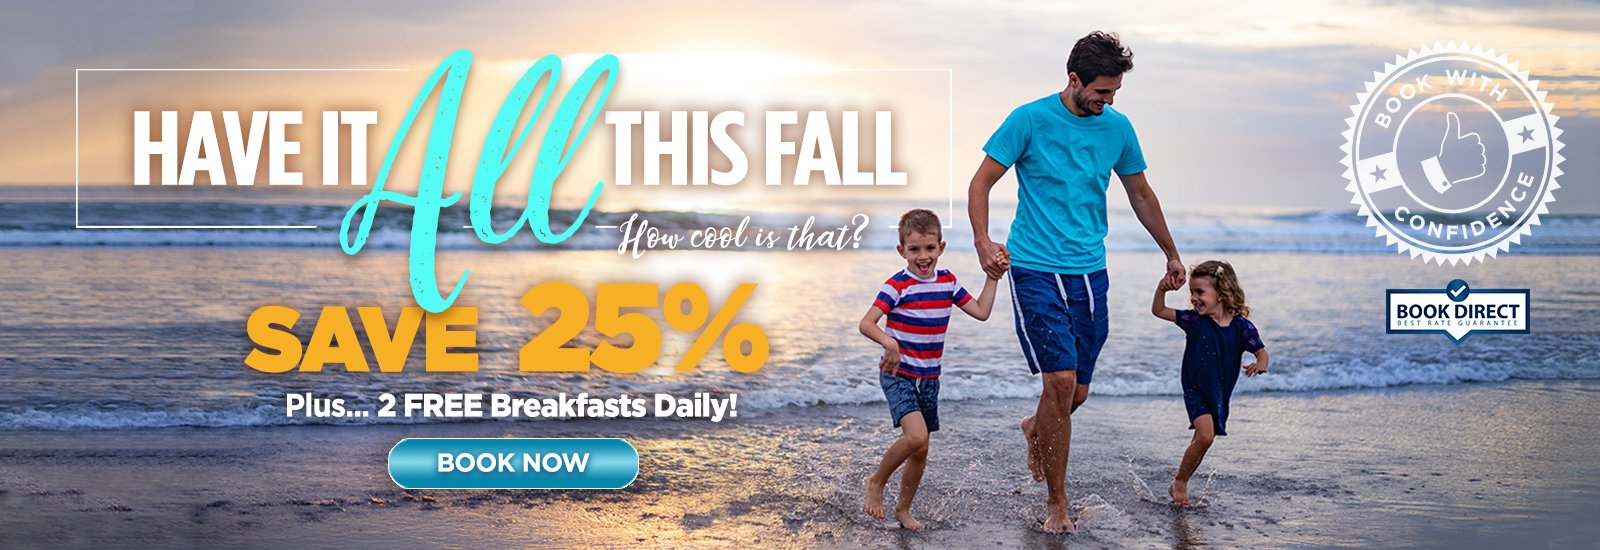 Have It All This Fall Sale - Save 25%